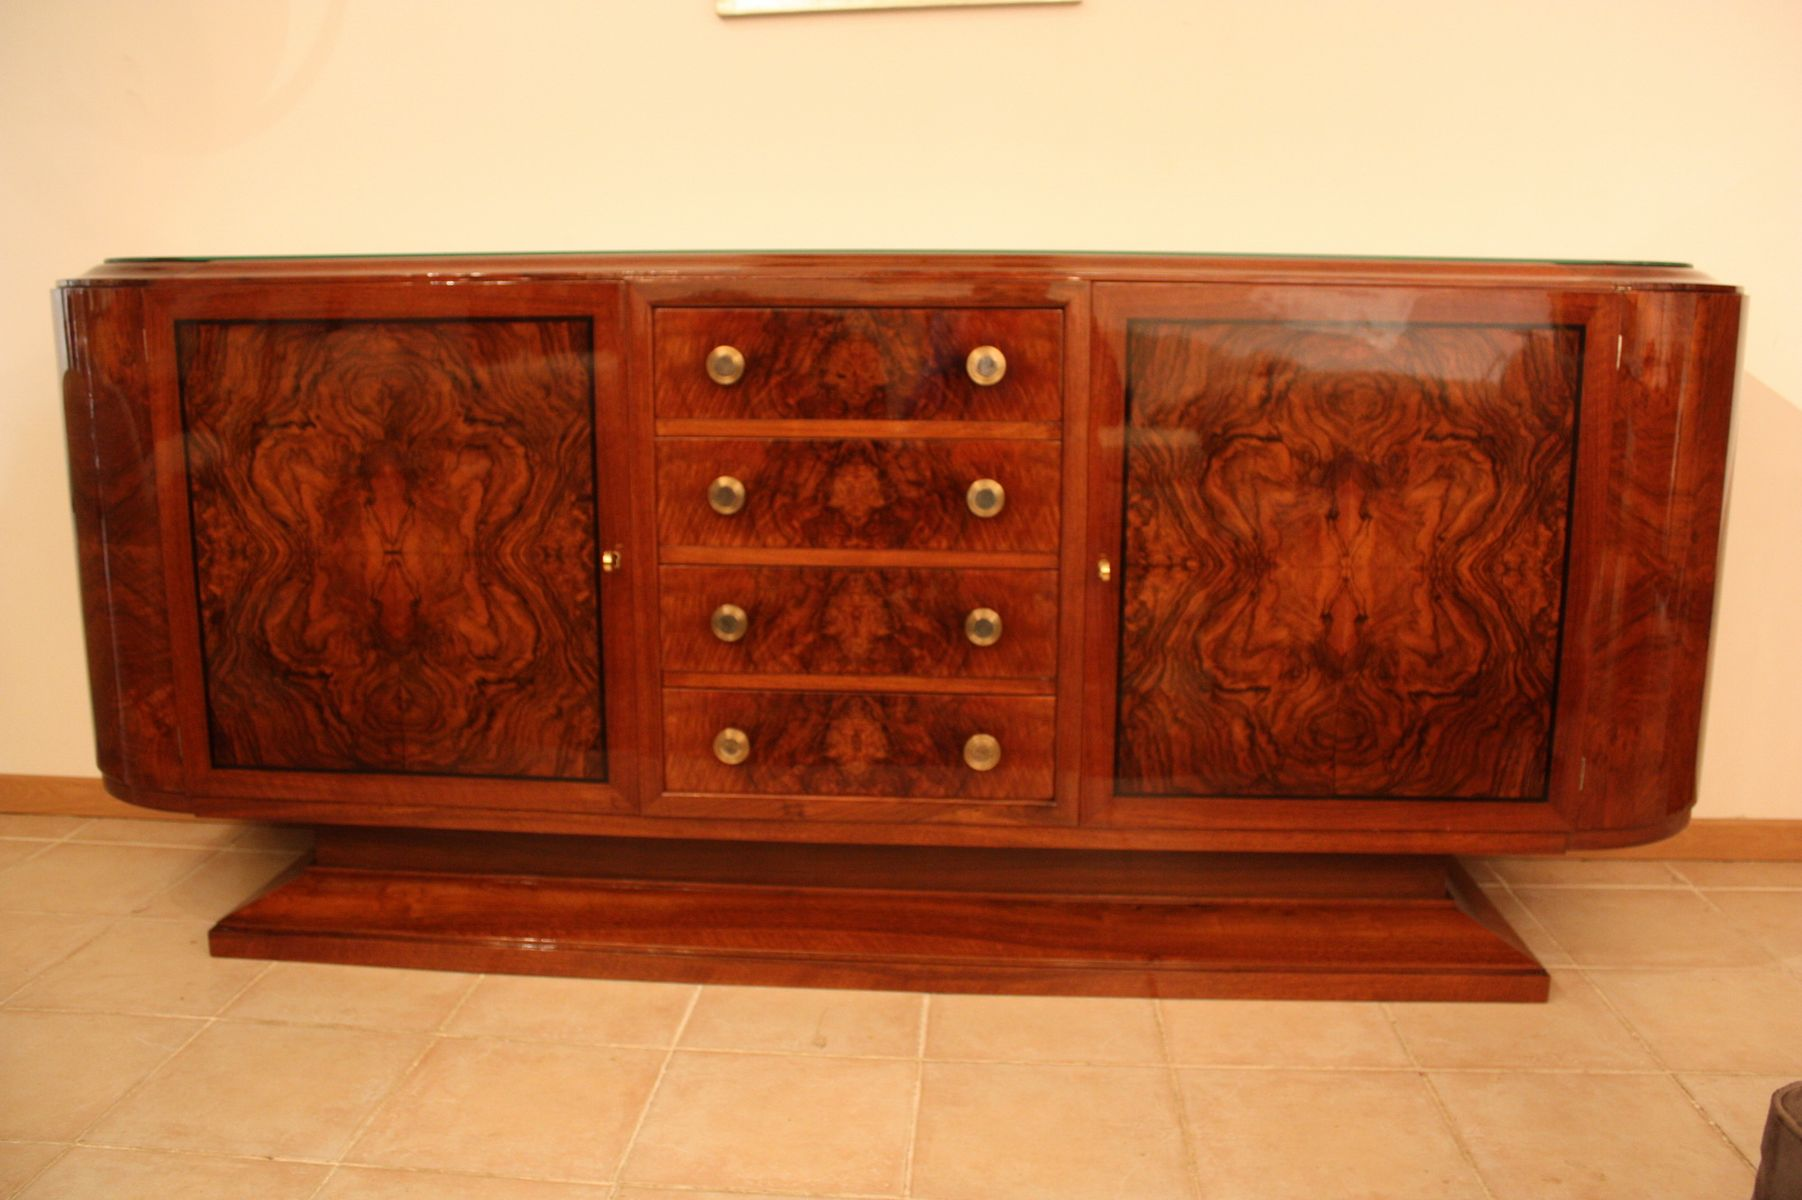 art deco burr walnut sideboard 1930 for sale at pamono. Black Bedroom Furniture Sets. Home Design Ideas